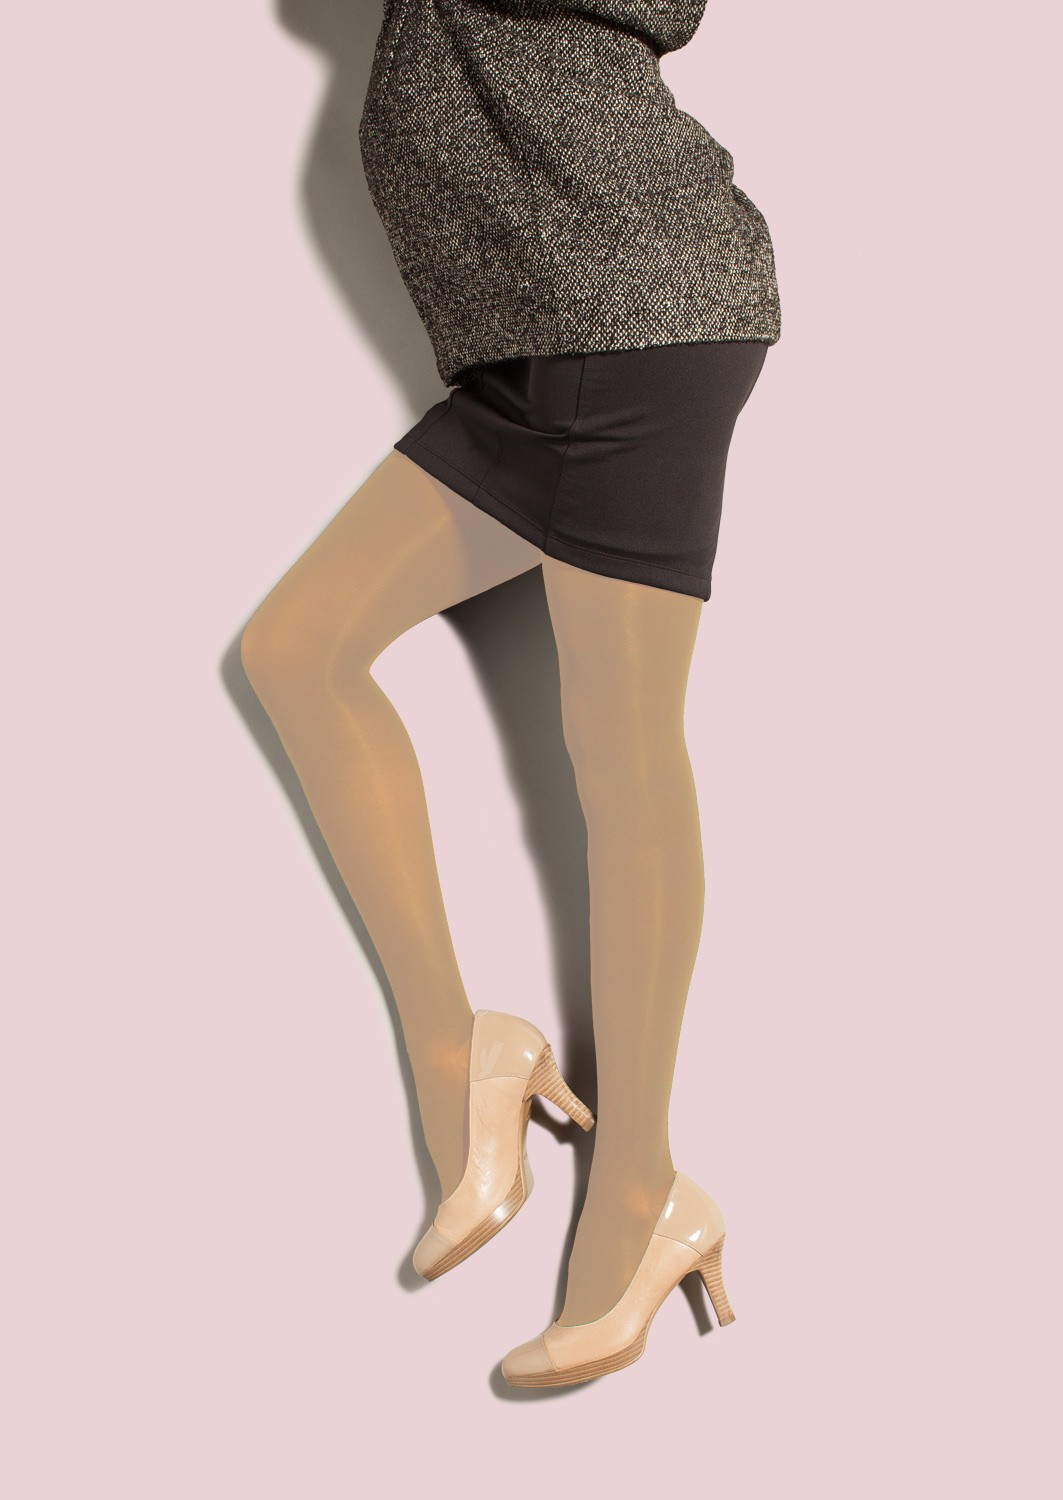 434f67f8652d5 Mild Support Maternity Pantyhose | Great Pair Store